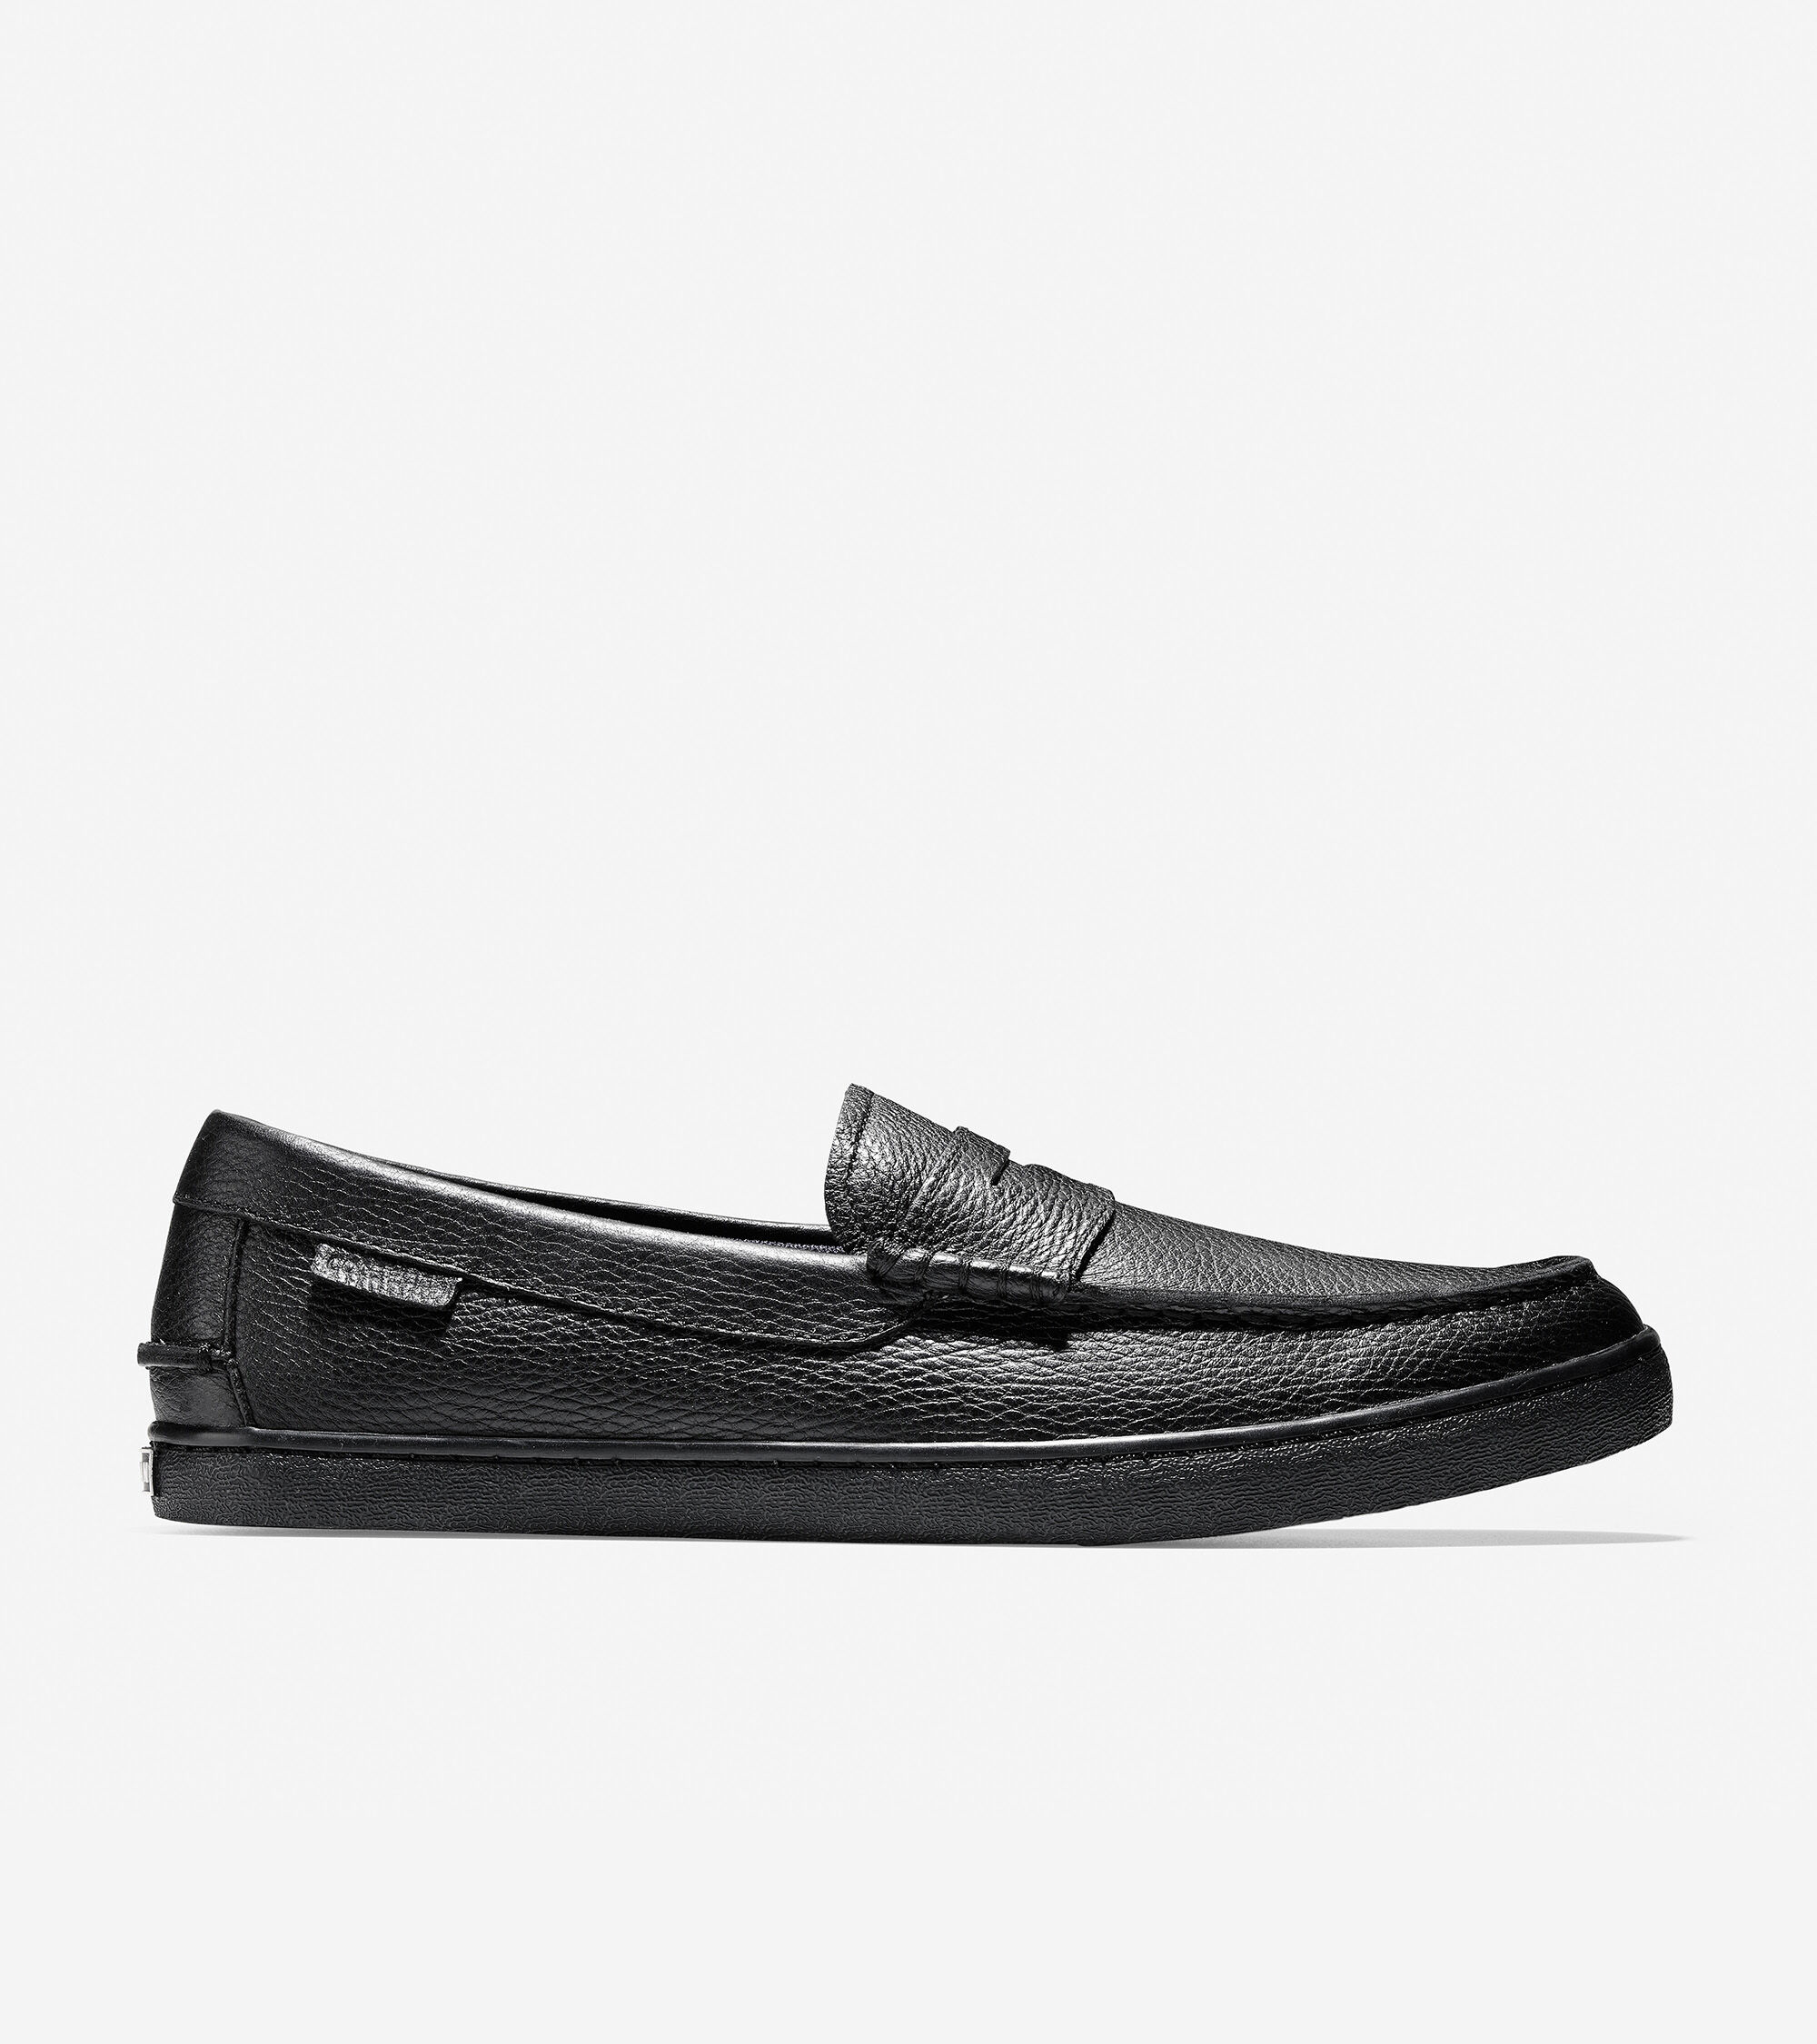 ab69602c212 Men s Nantucket Loafers in Black Leather